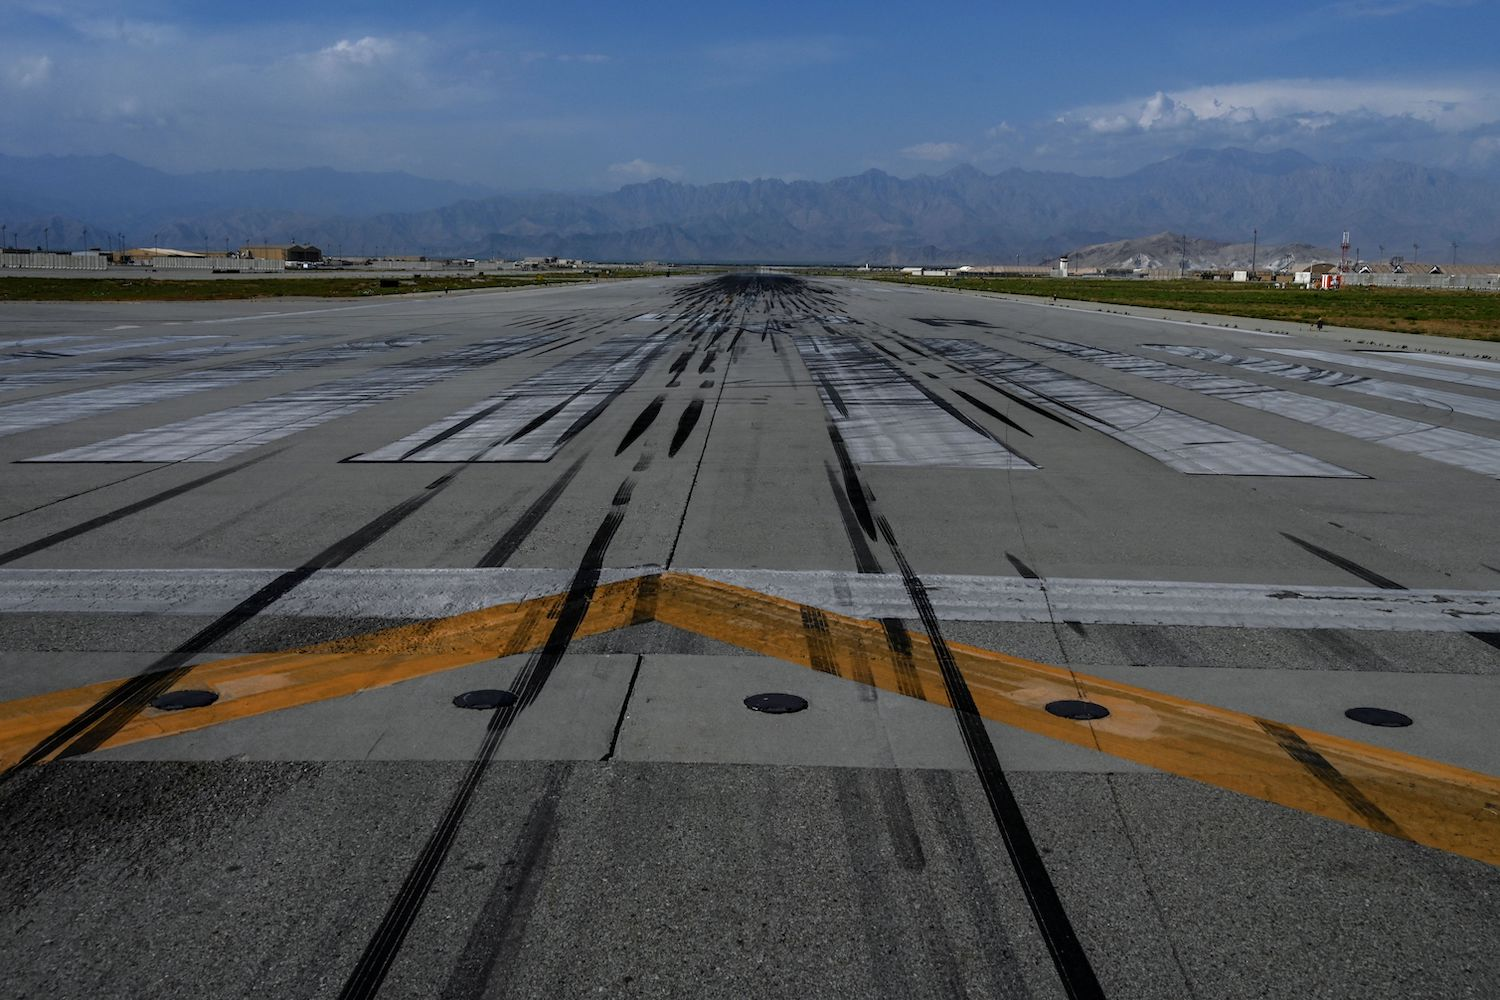 A view of the completely empty runway tarmac inside the Bagram Air Base.